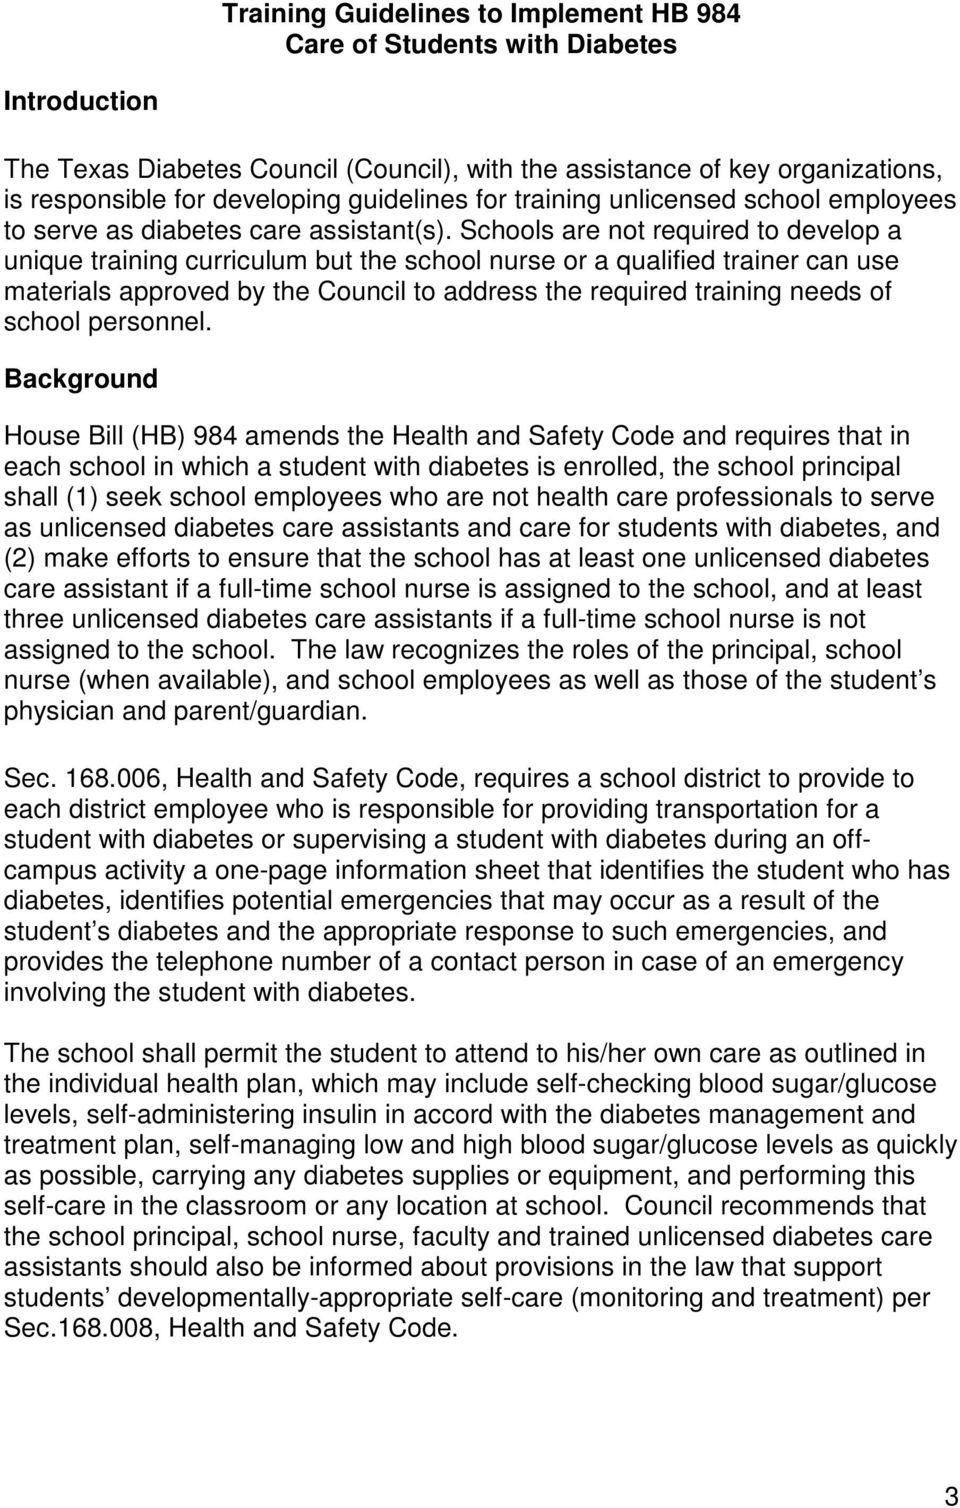 Schools are not required to develop a unique training curriculum but the school nurse or a qualified trainer can use materials approved by the Council to address the required training needs of school